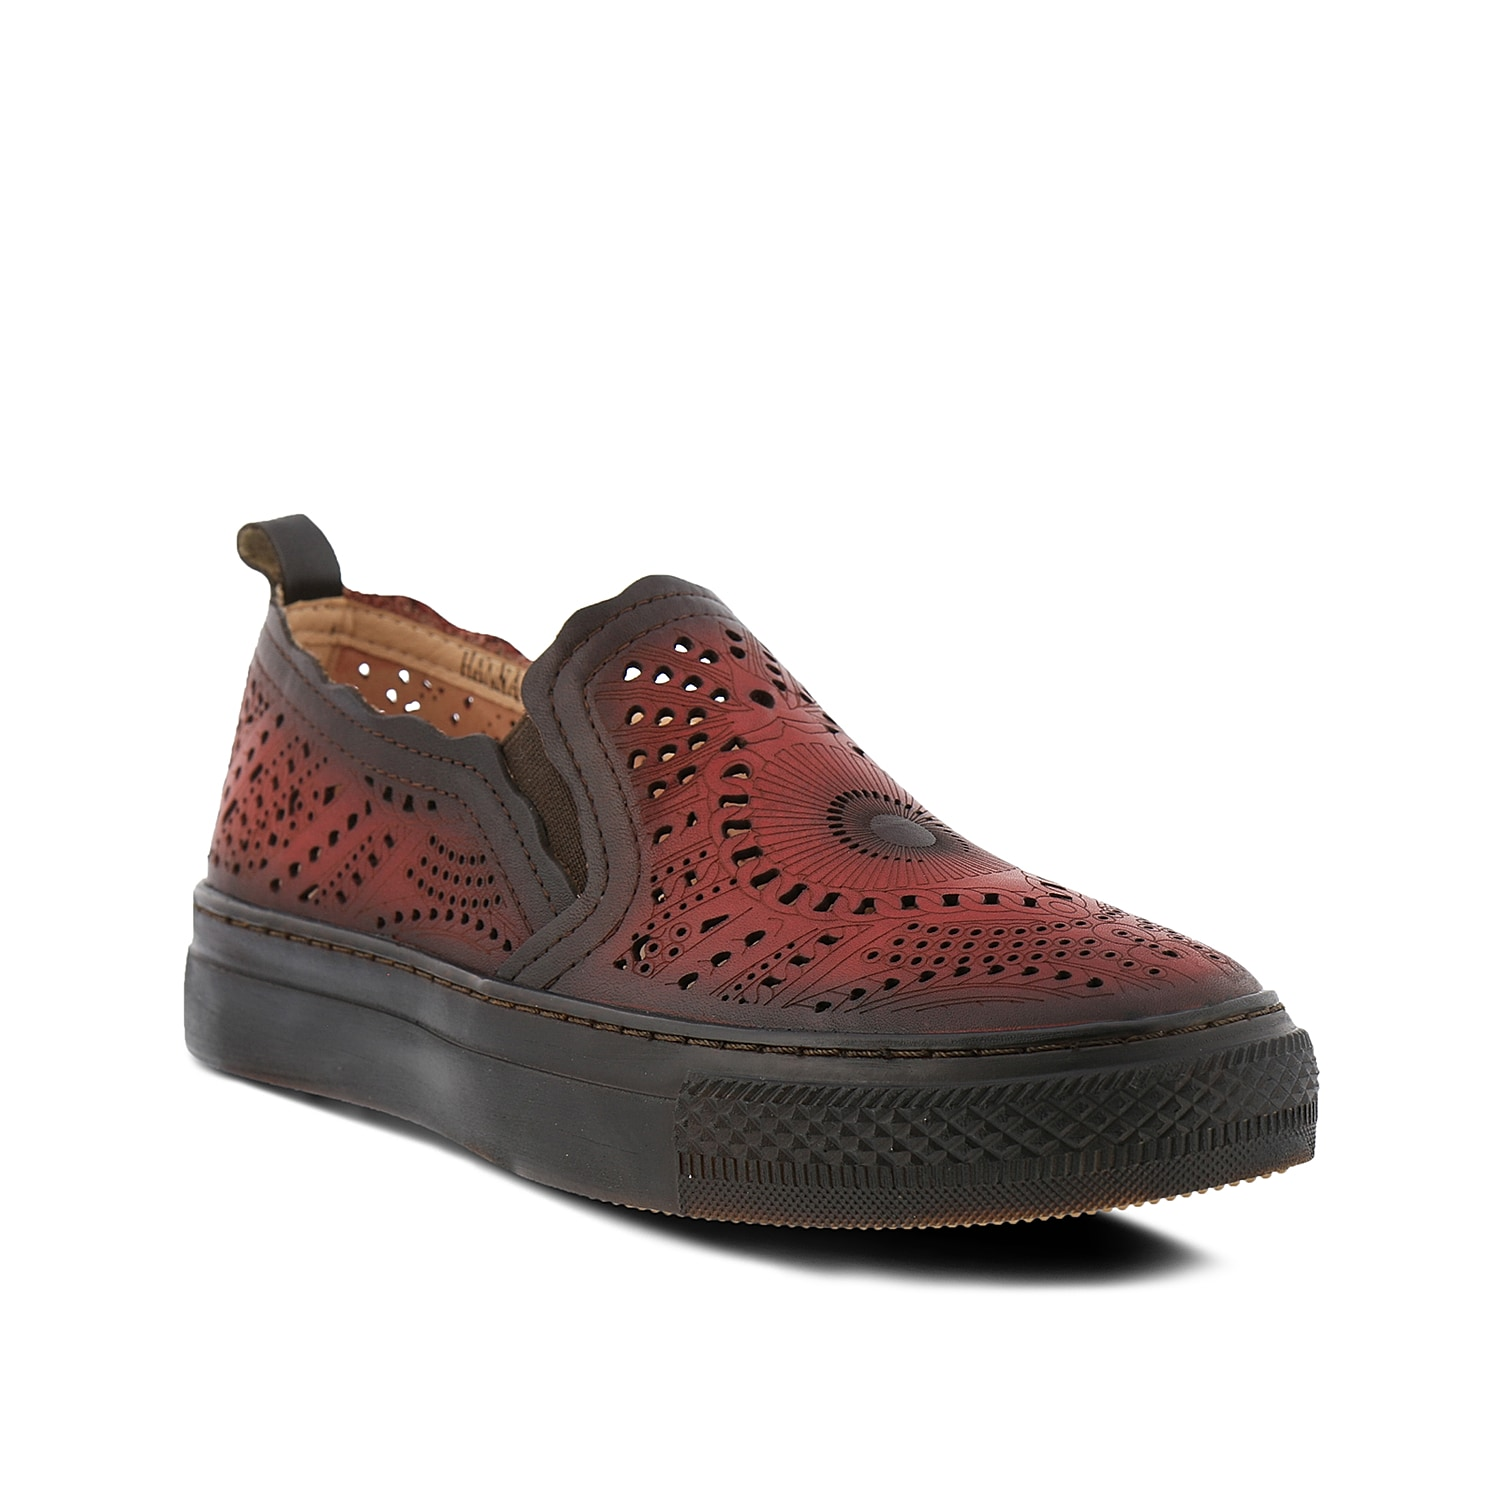 Sporty and artsy style come together in the Hanna slip-on sneaker from L\\\'Artiste by Spring Step. An intricate laser-cut design will take casual looks to the next level.